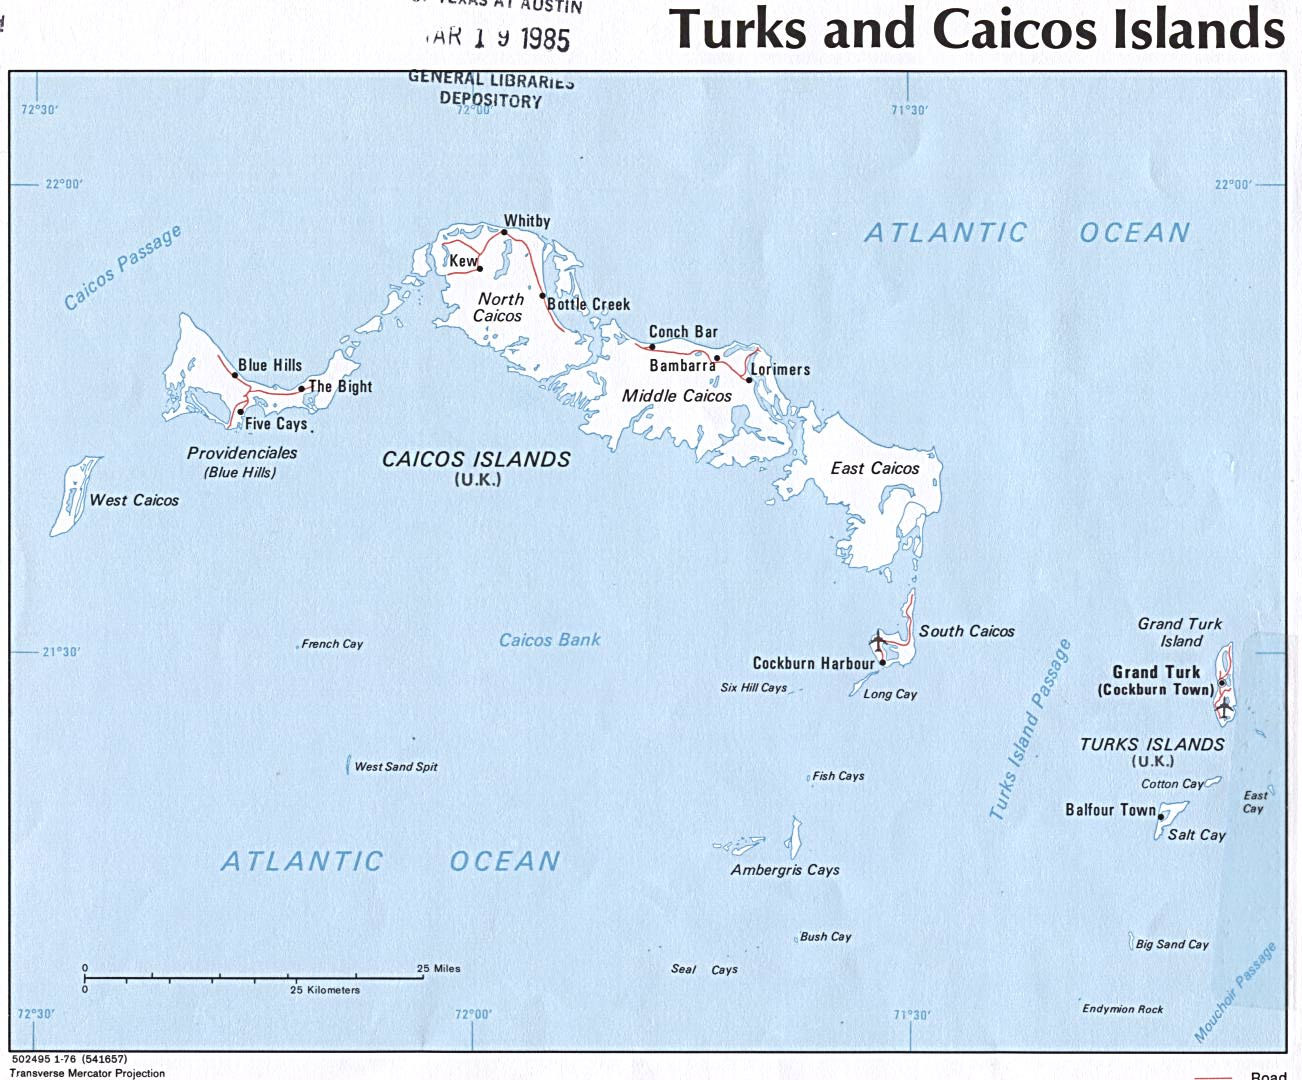 Turks and Caicos Islands Political Map